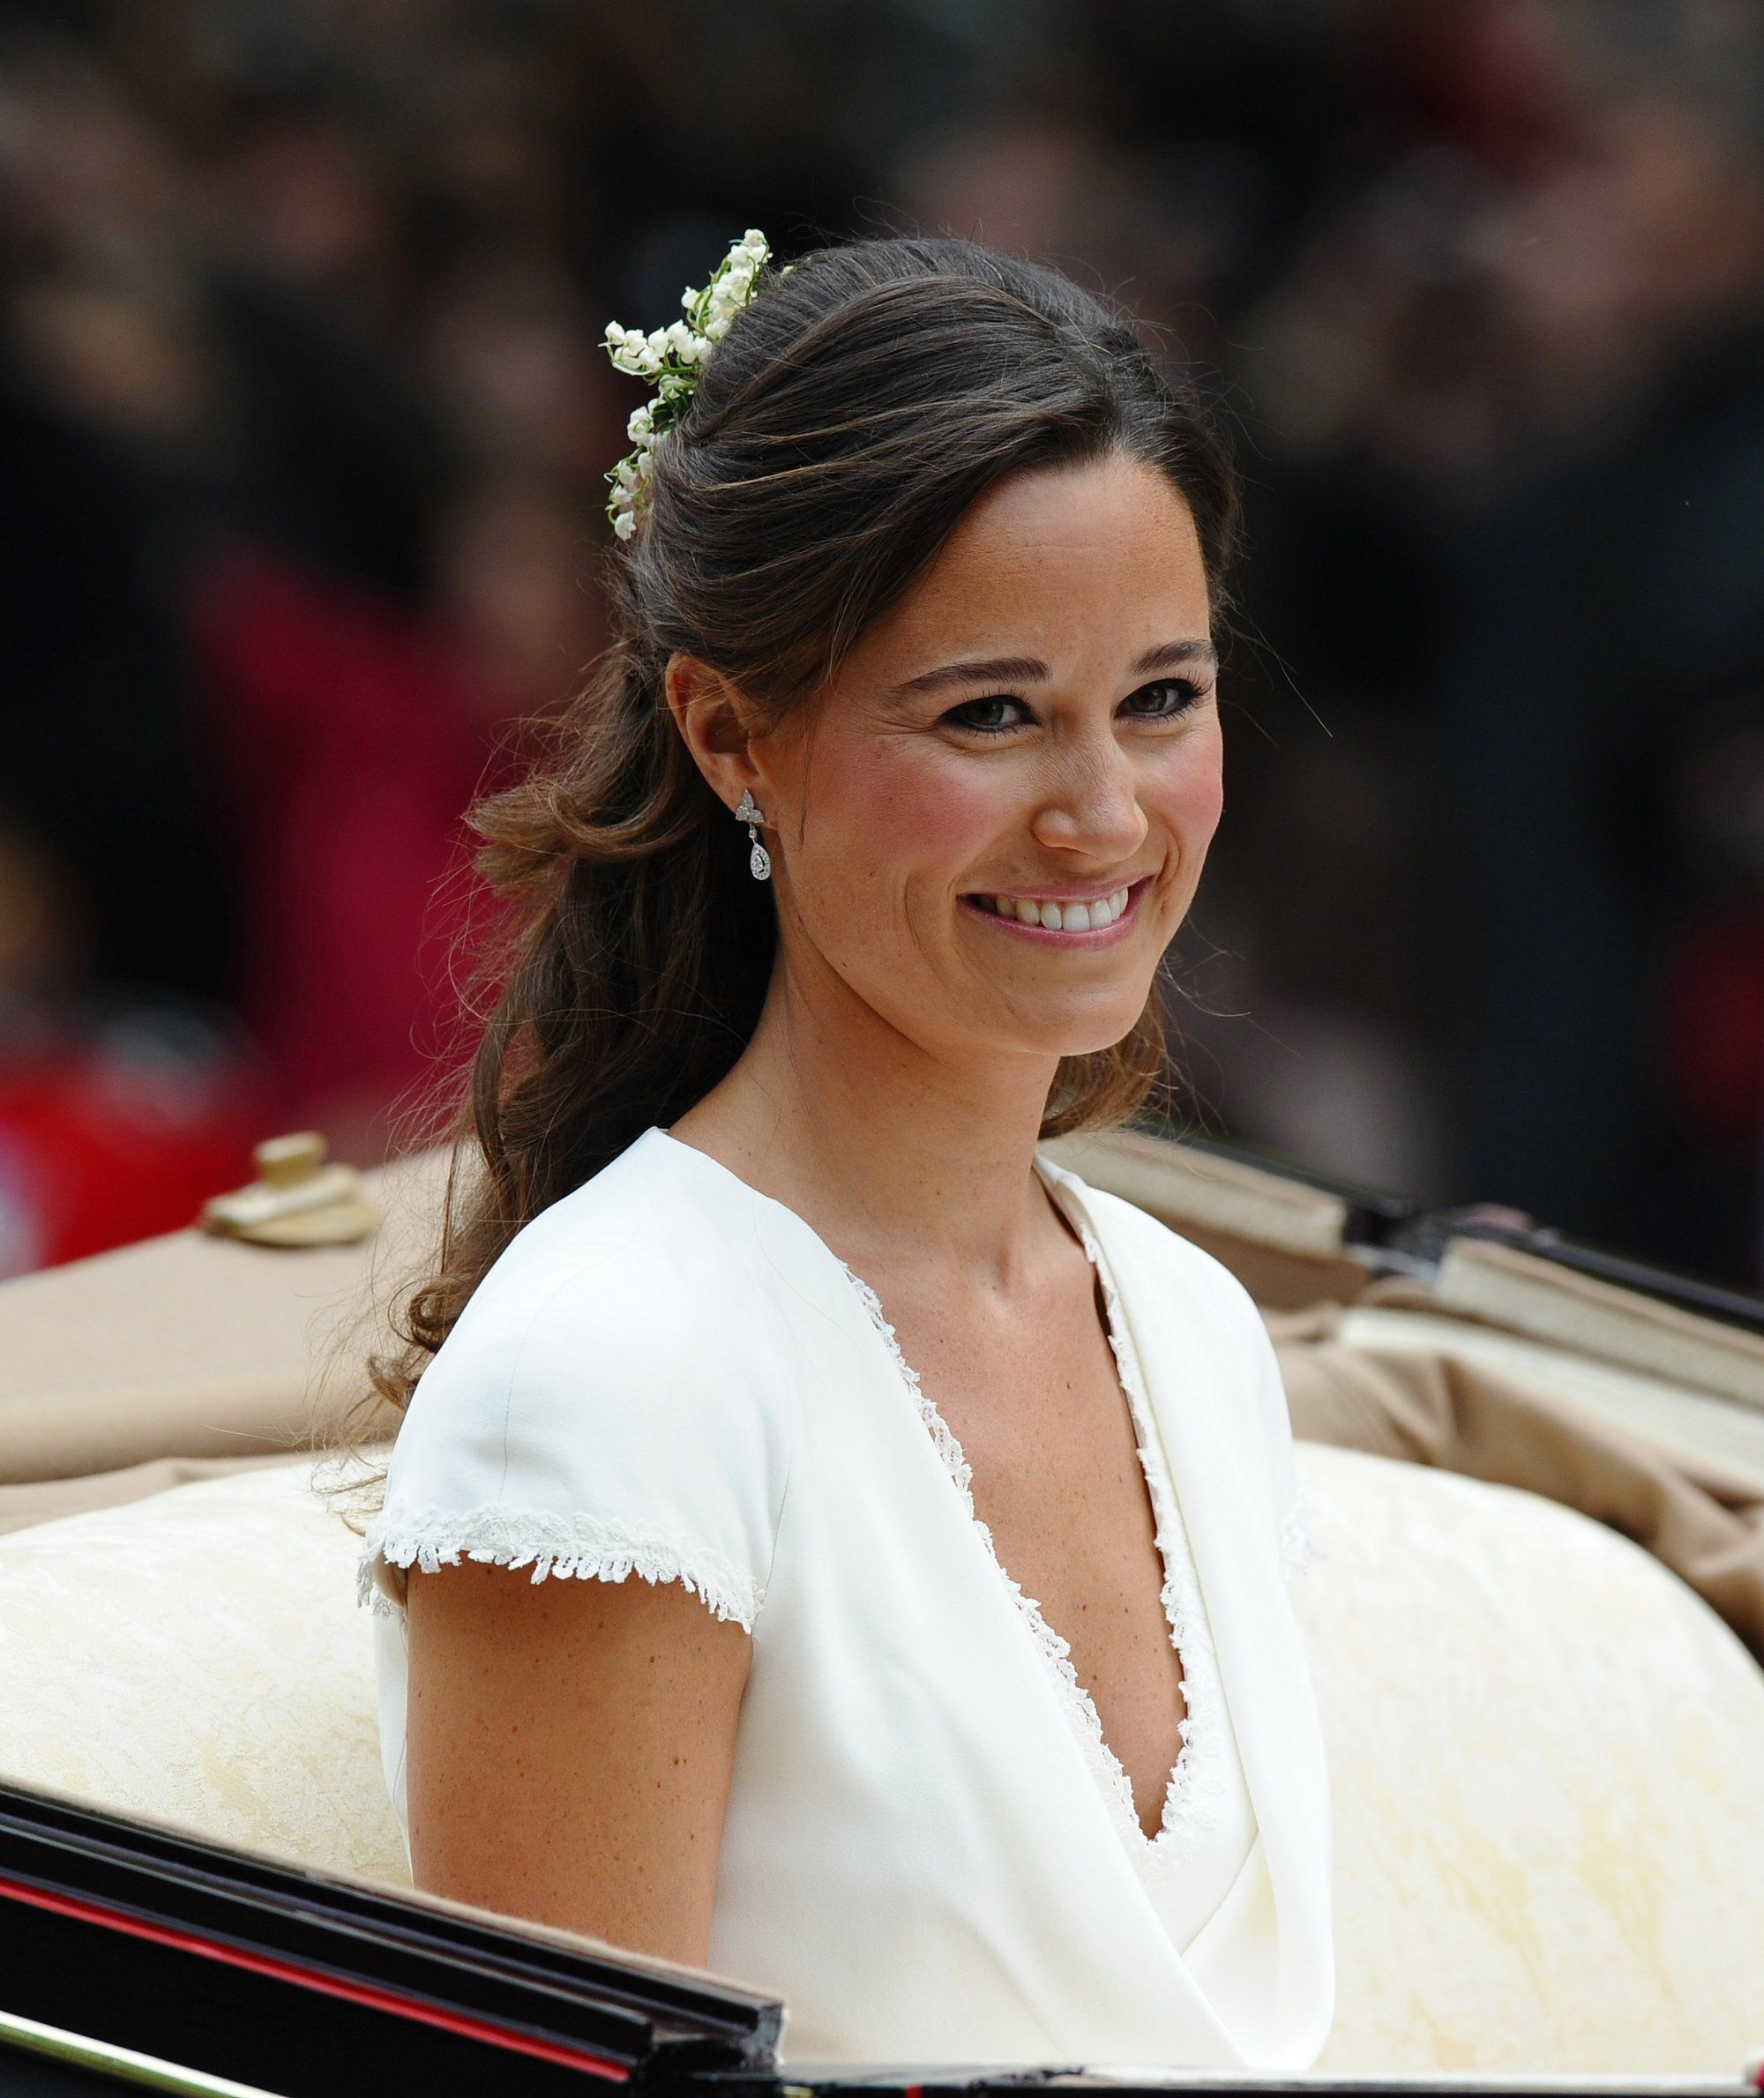 5 things you didn't know about pippa middleton | prince william